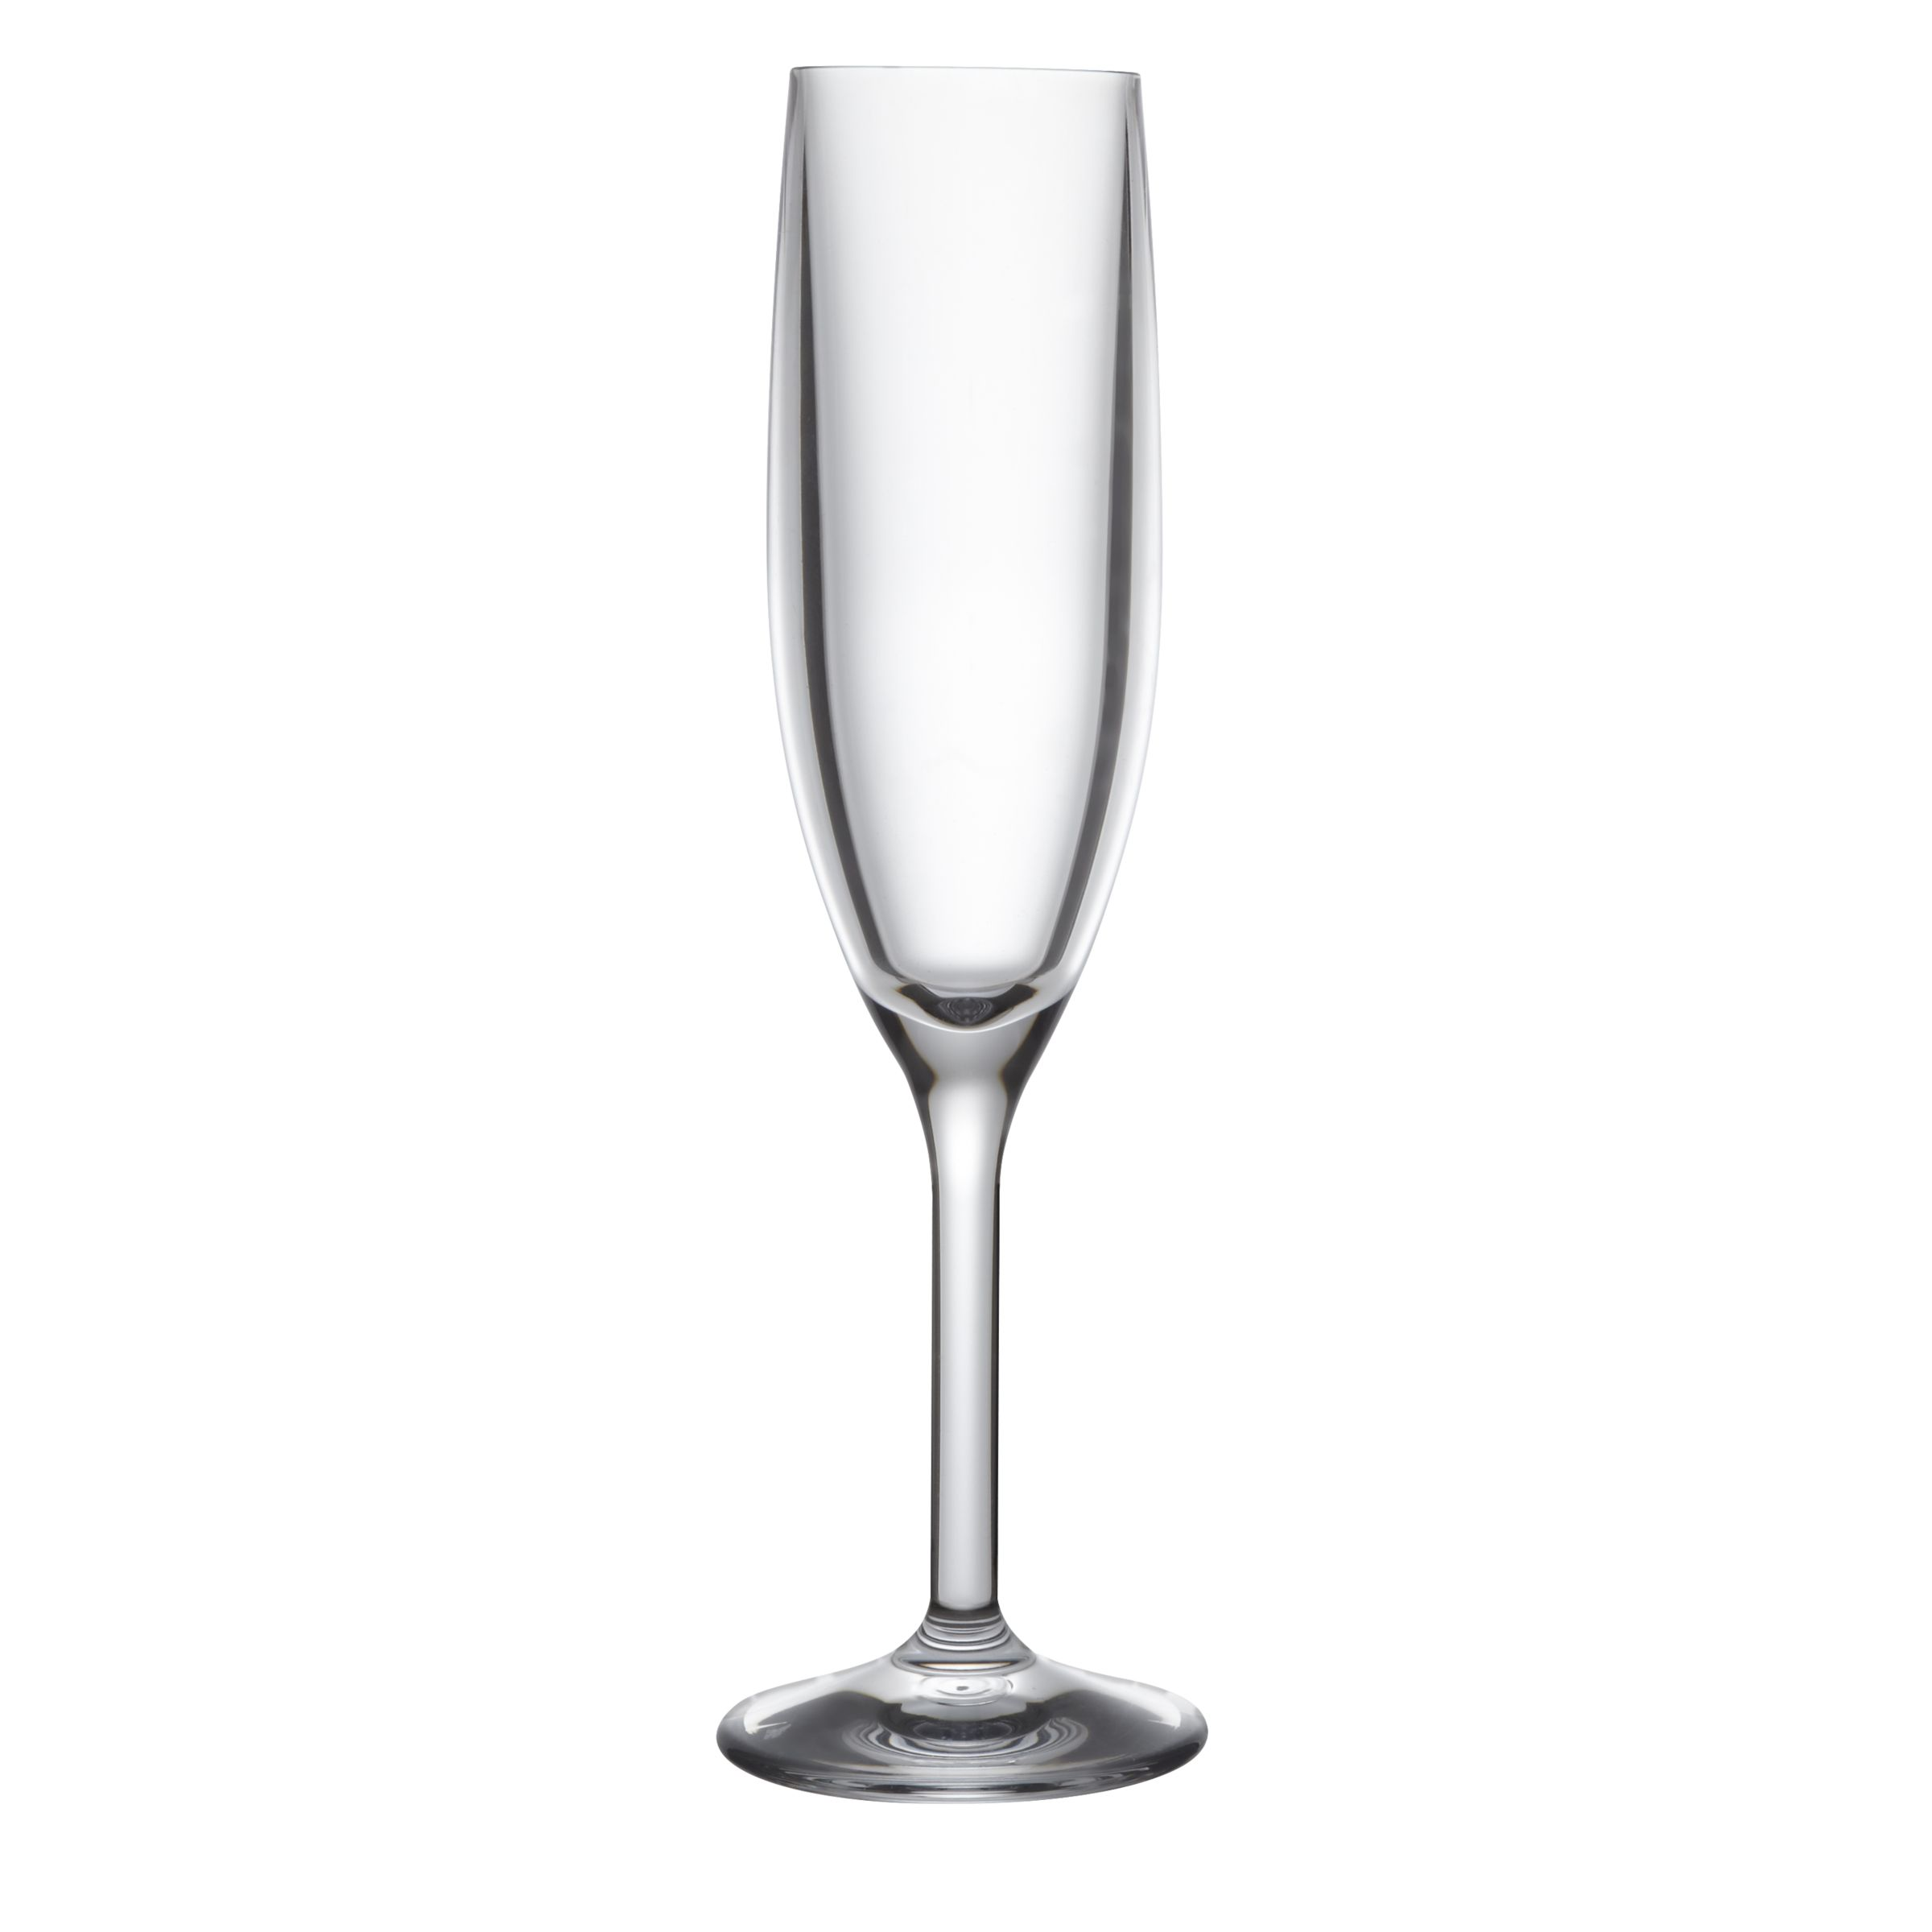 Strahl Strahl Polycarbonate Picnic Champagne Flute